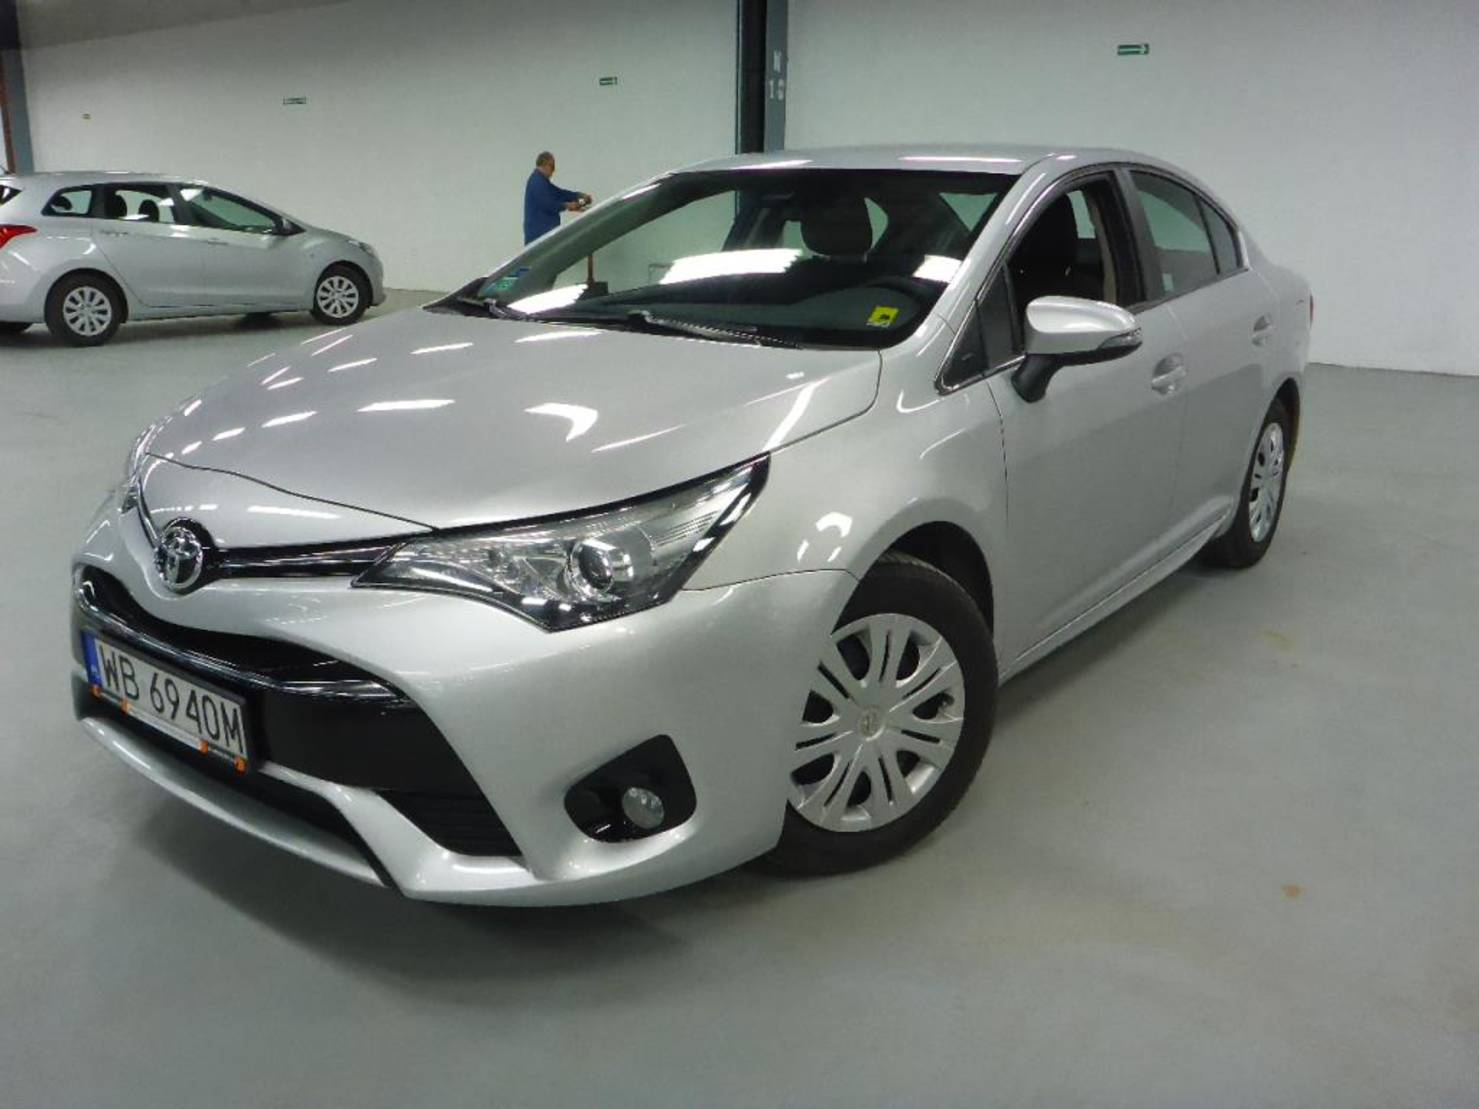 Toyota Avensis 1.8 147km Valvematic Active detail1